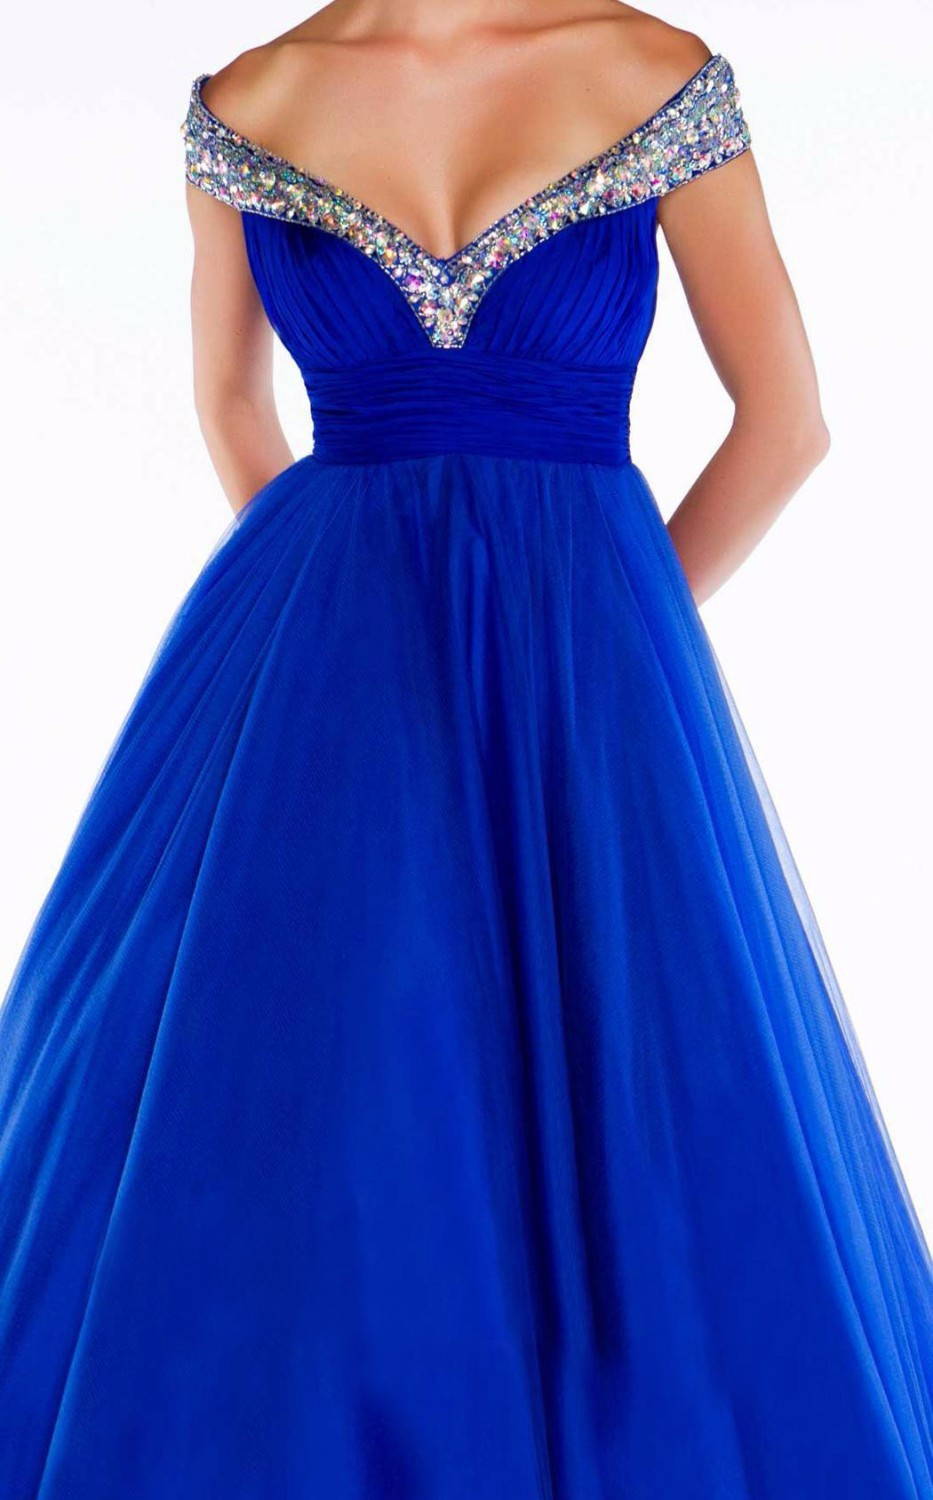 New-Arrival-2014-Sexy-Royal-Blue-Red-White-V-neck-A-Line-Modest-Evening-Pageant-Dresses (5)